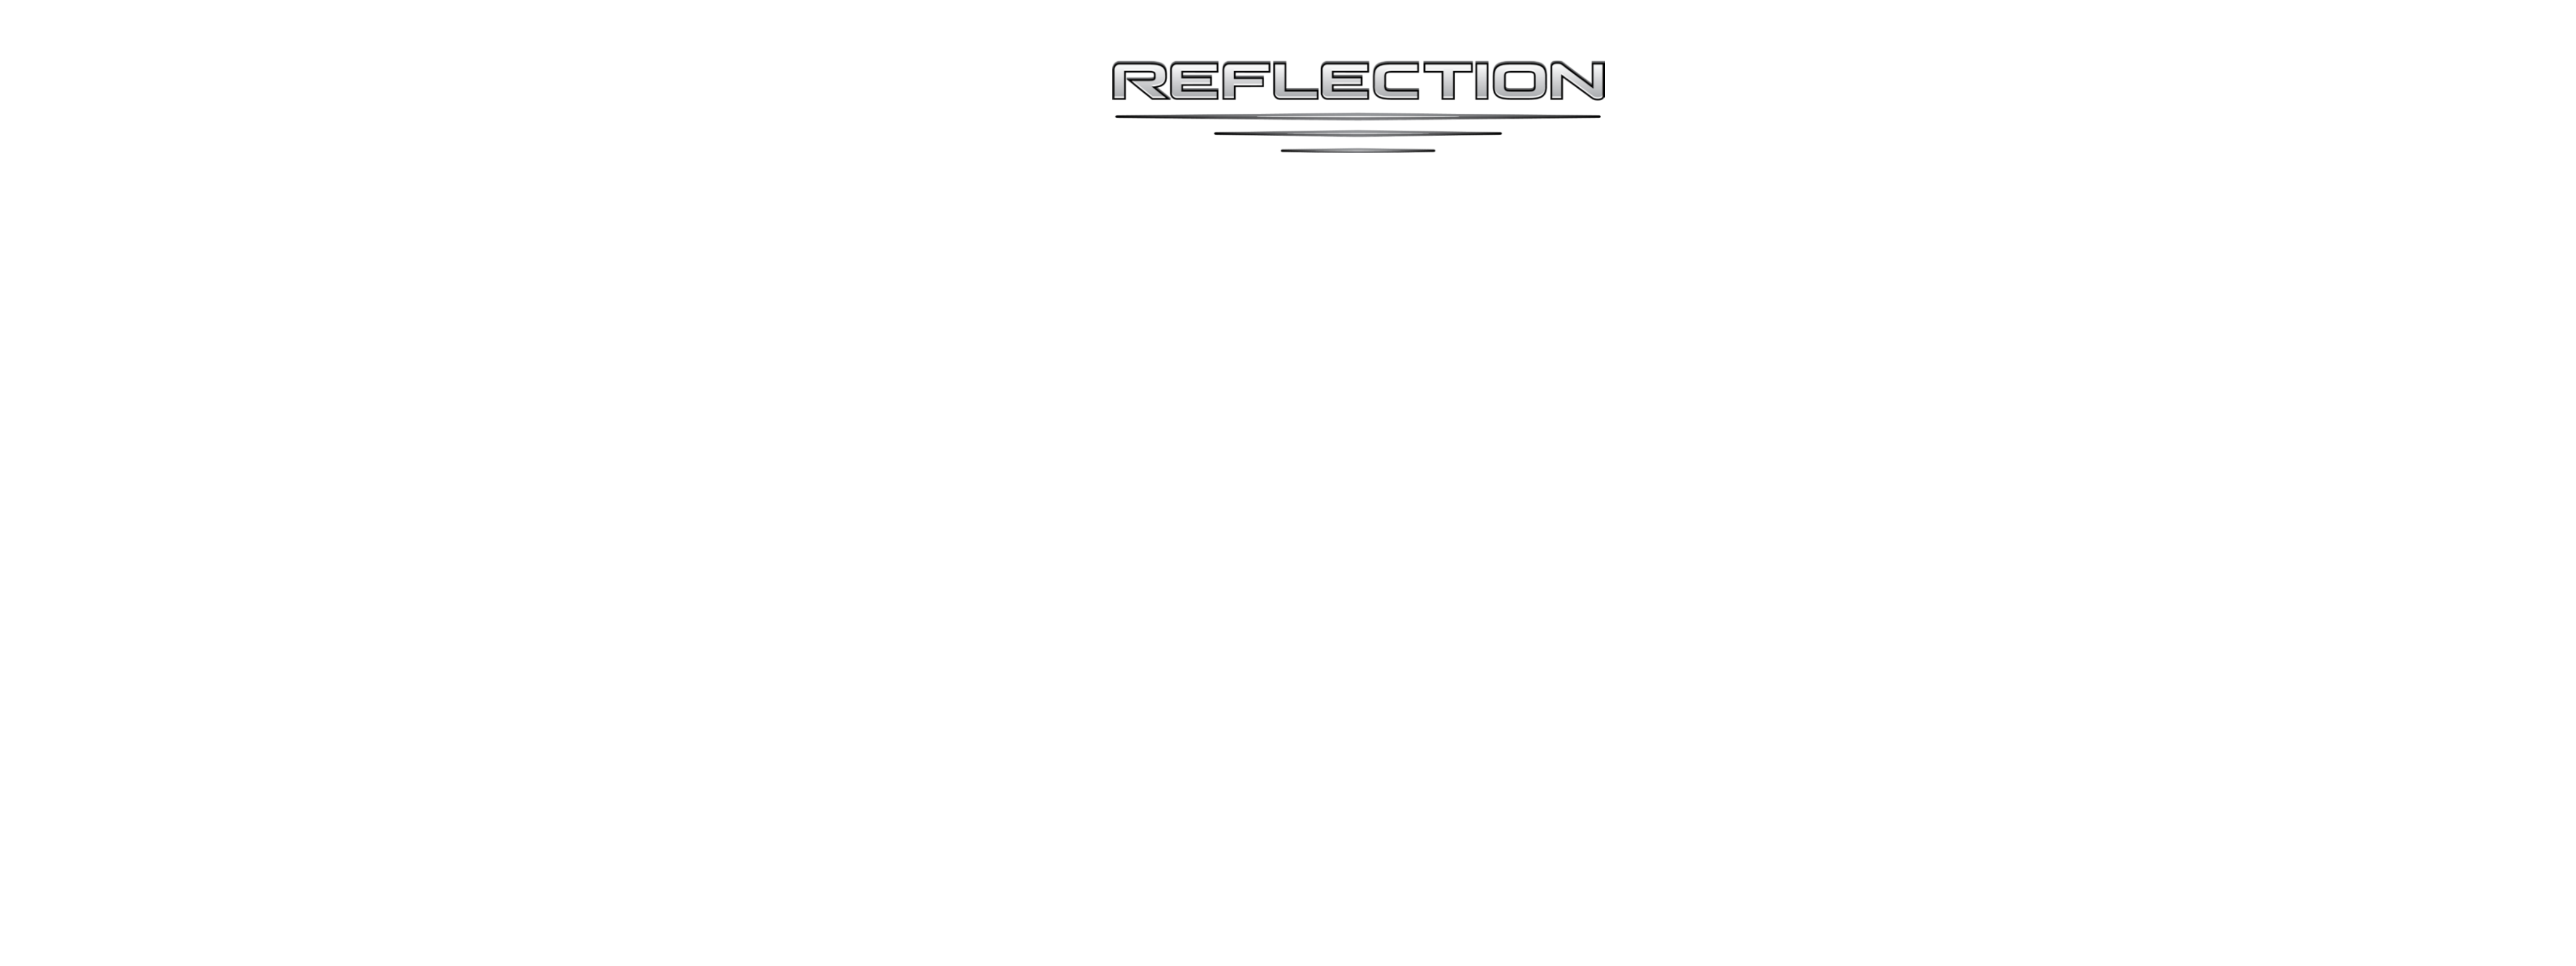 REFLECTION-LOGO-2ND.png